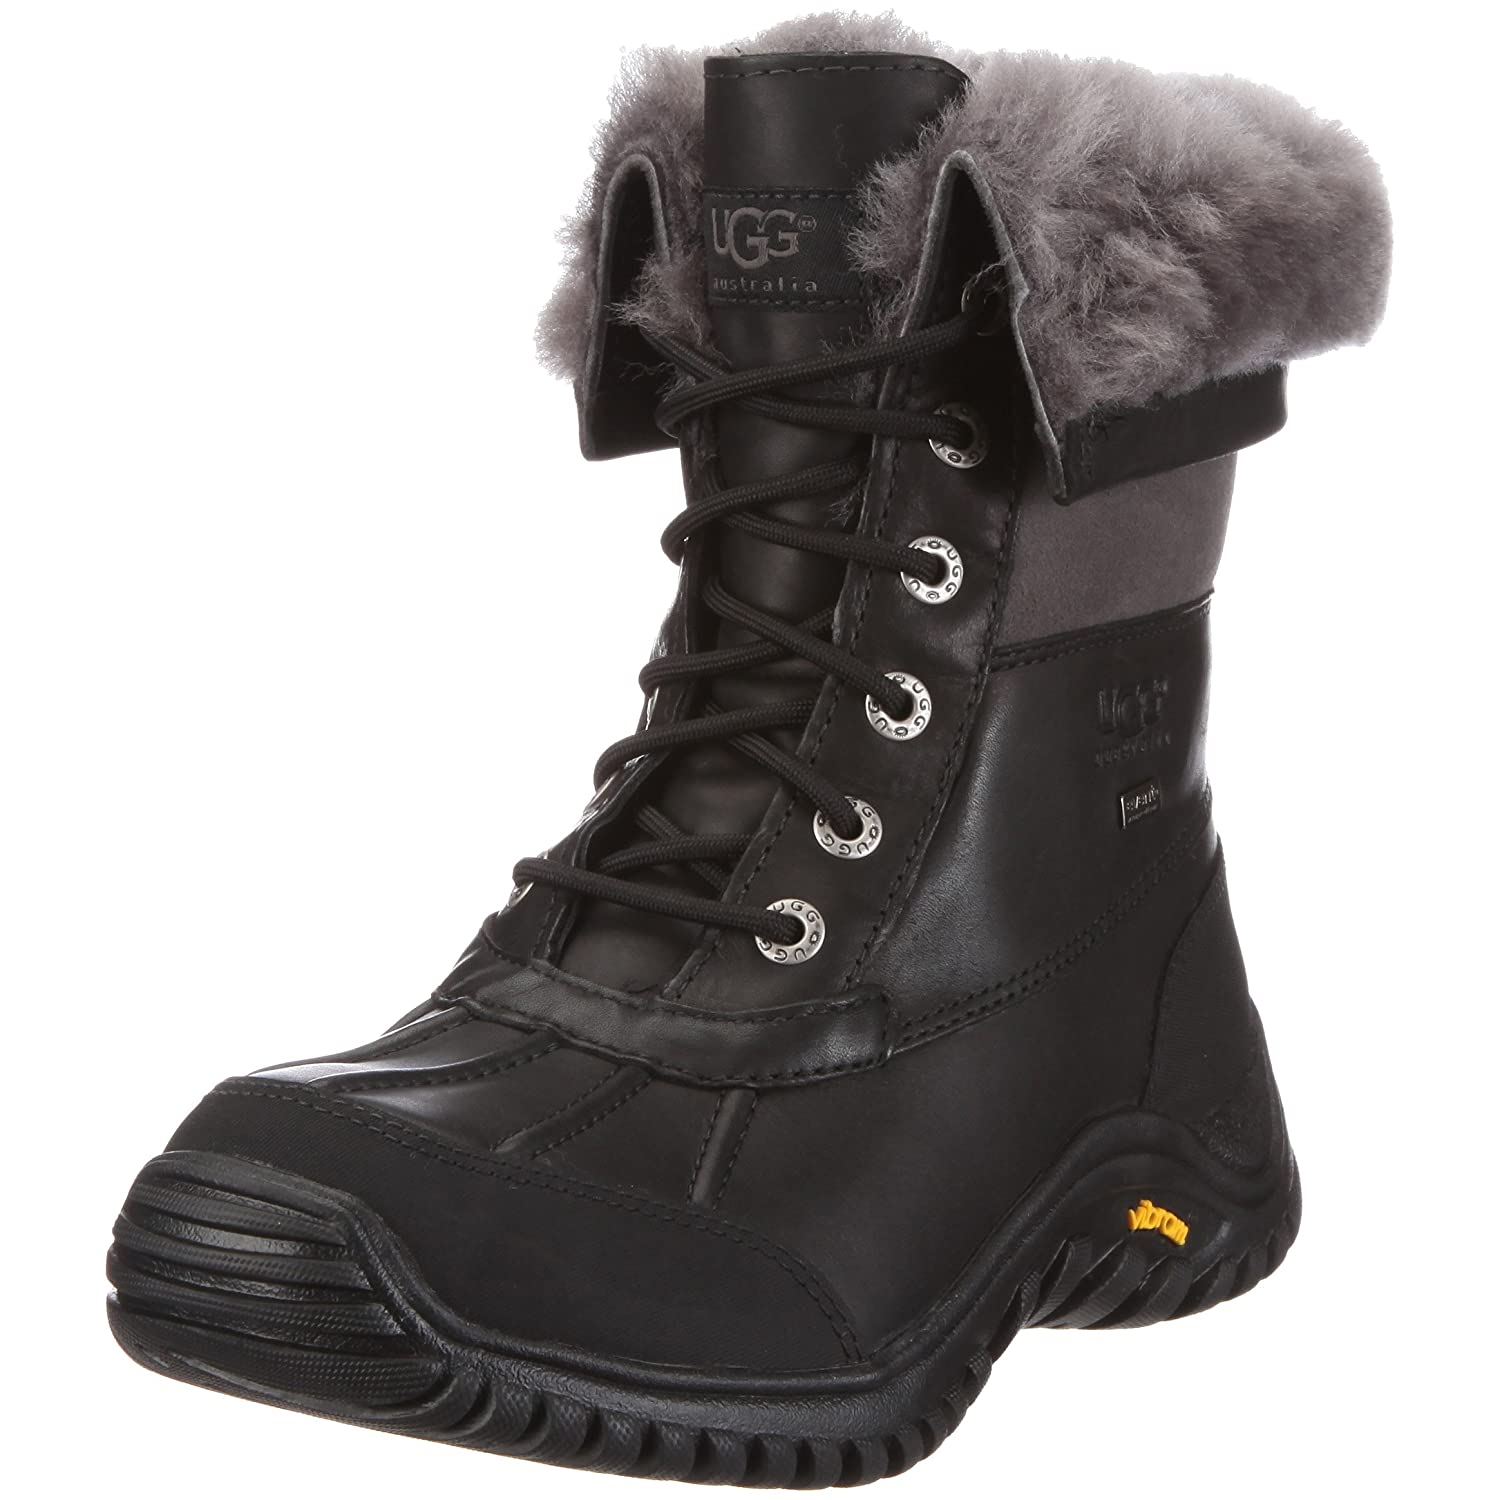 d8be0dfa460 UGG Women's Adirondack II Winter Boot